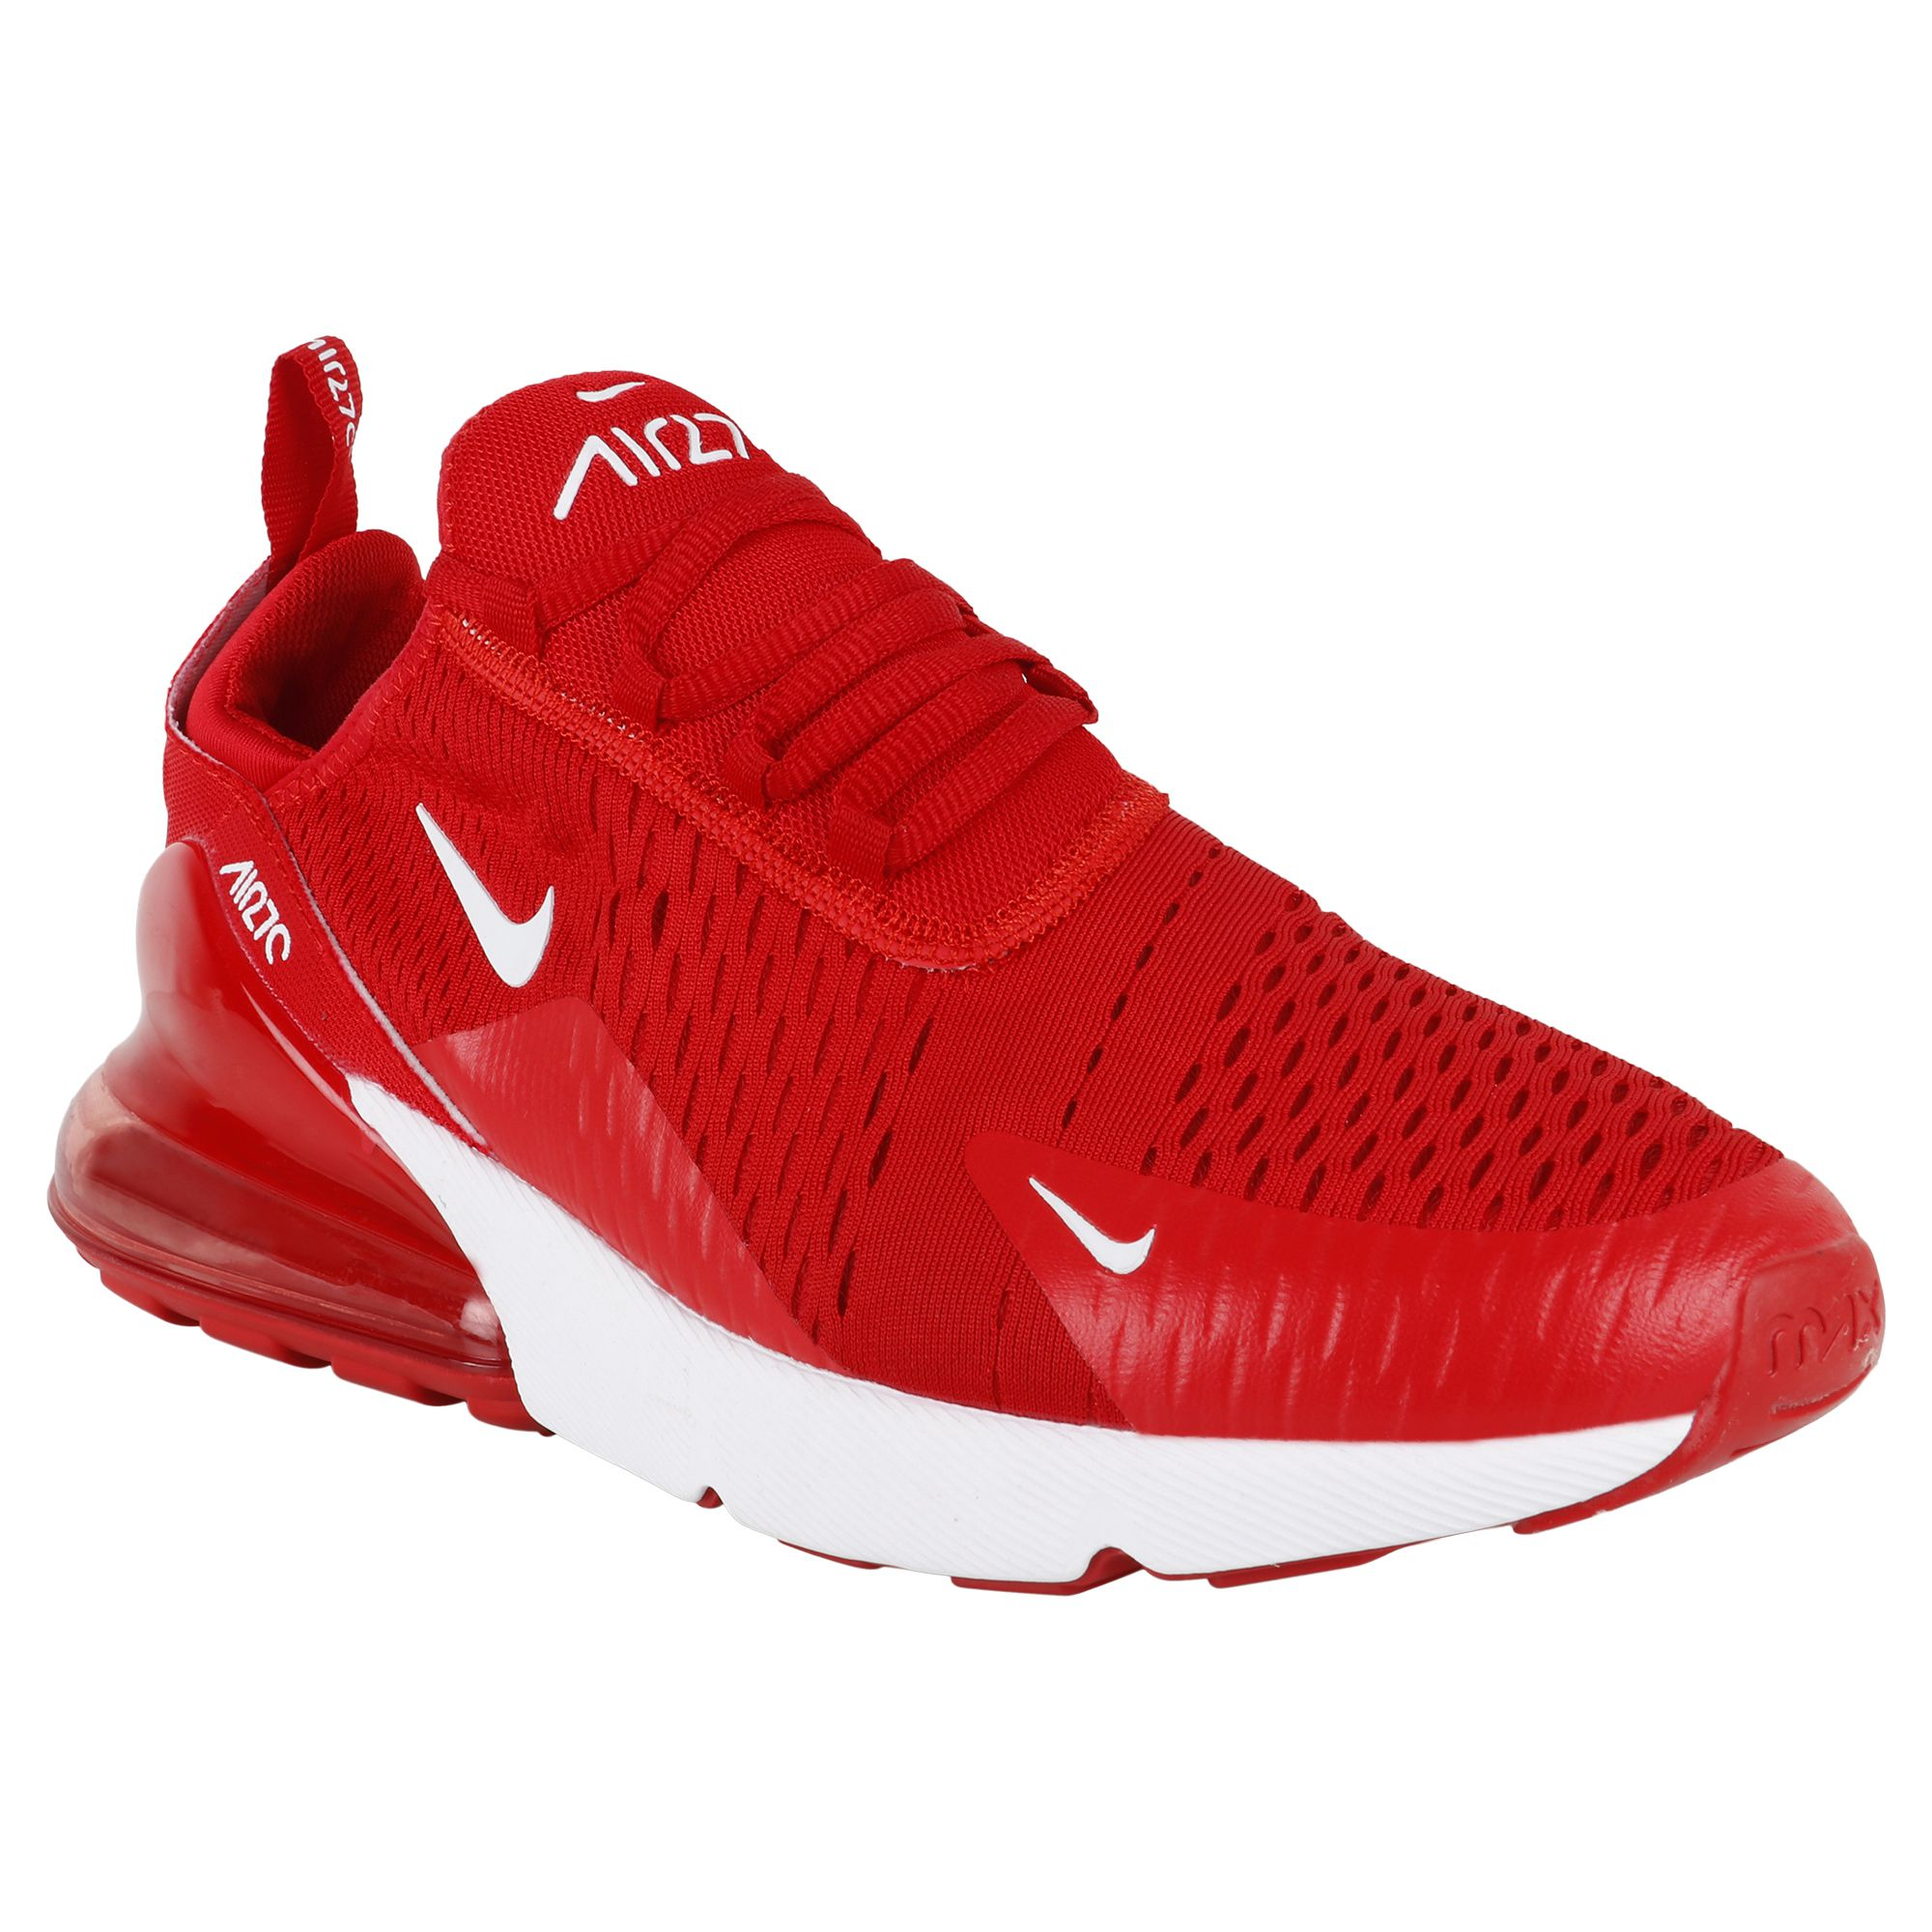 wholesale dealer bed08 58cf1 Nike Air Max 270 Red Running Shoes - Buy Nike Air Max 270 Red ...